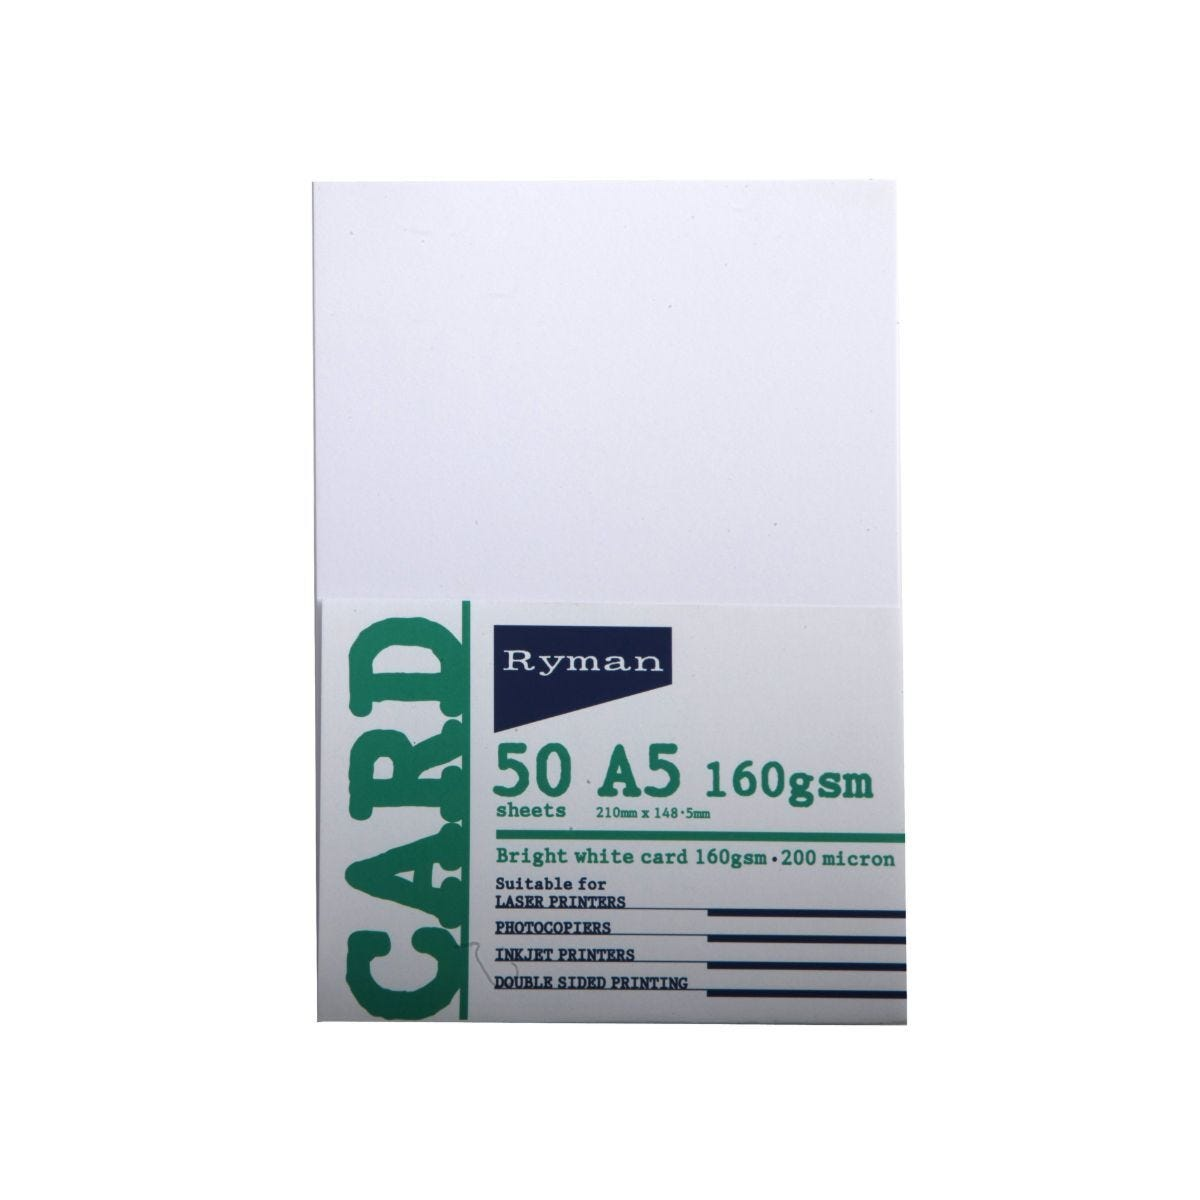 Ryman Card A5 160GSM Pack of 500